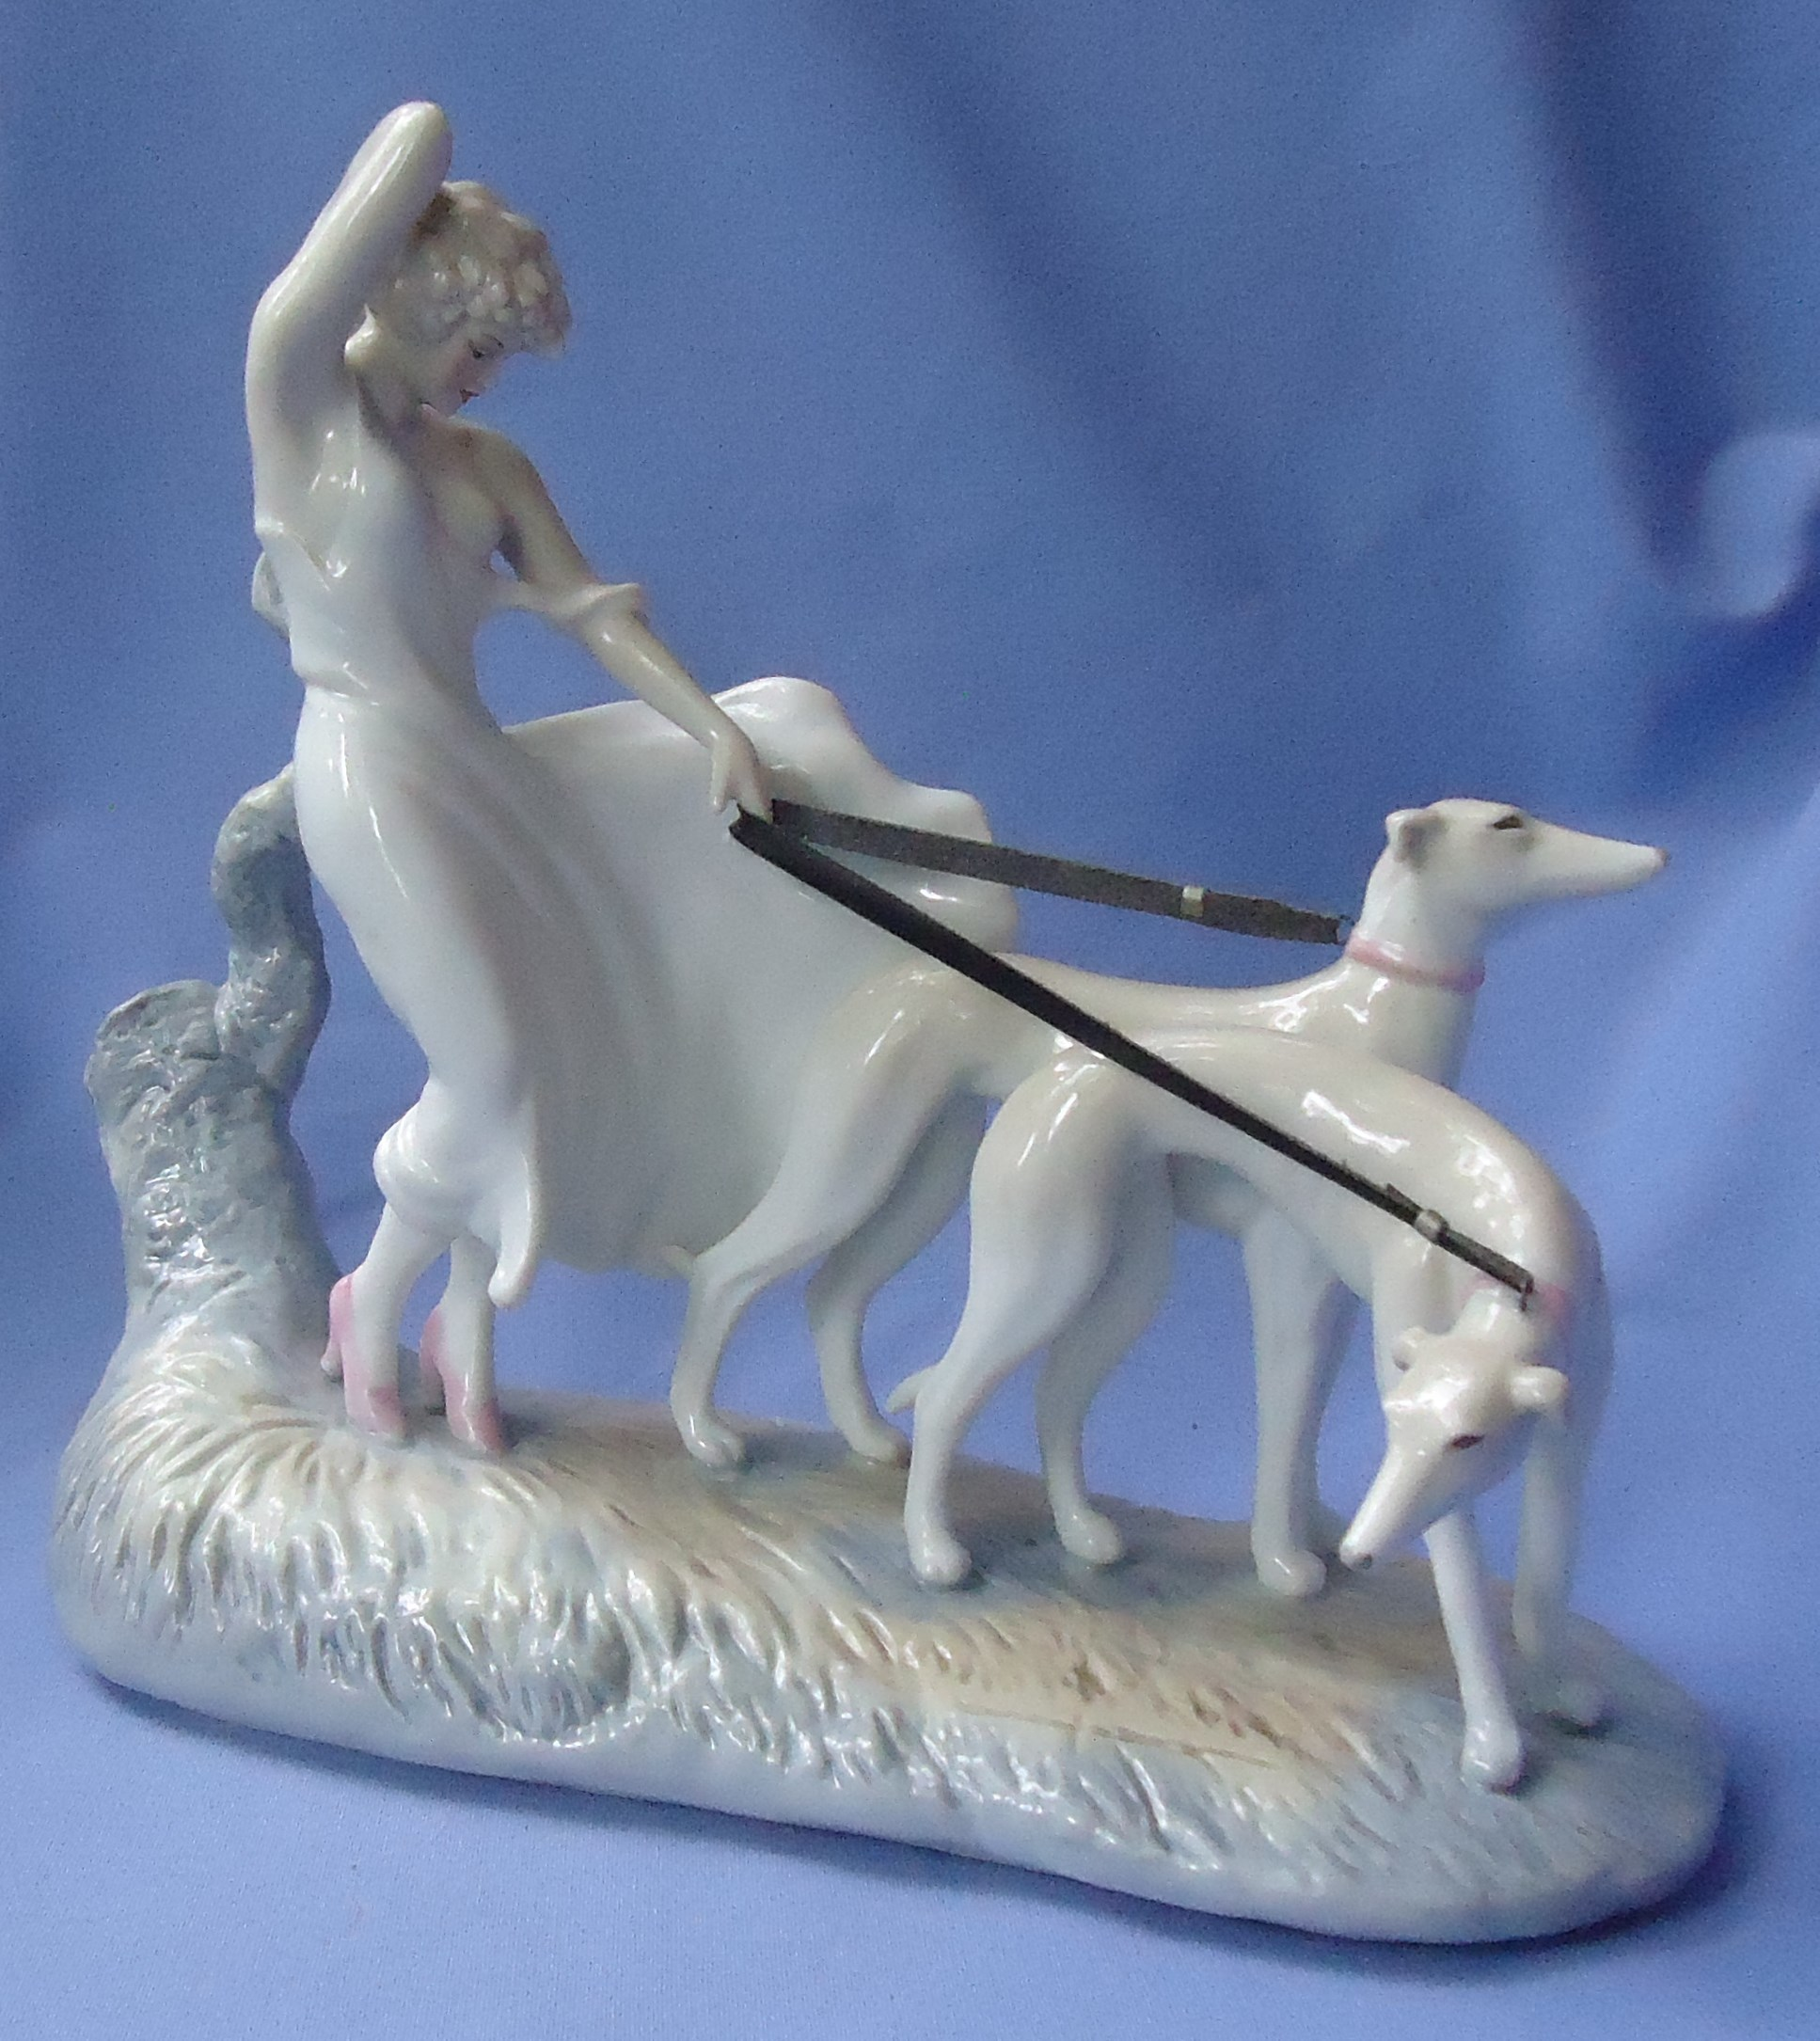 art deco Icart lady greyhounds whippet figurine